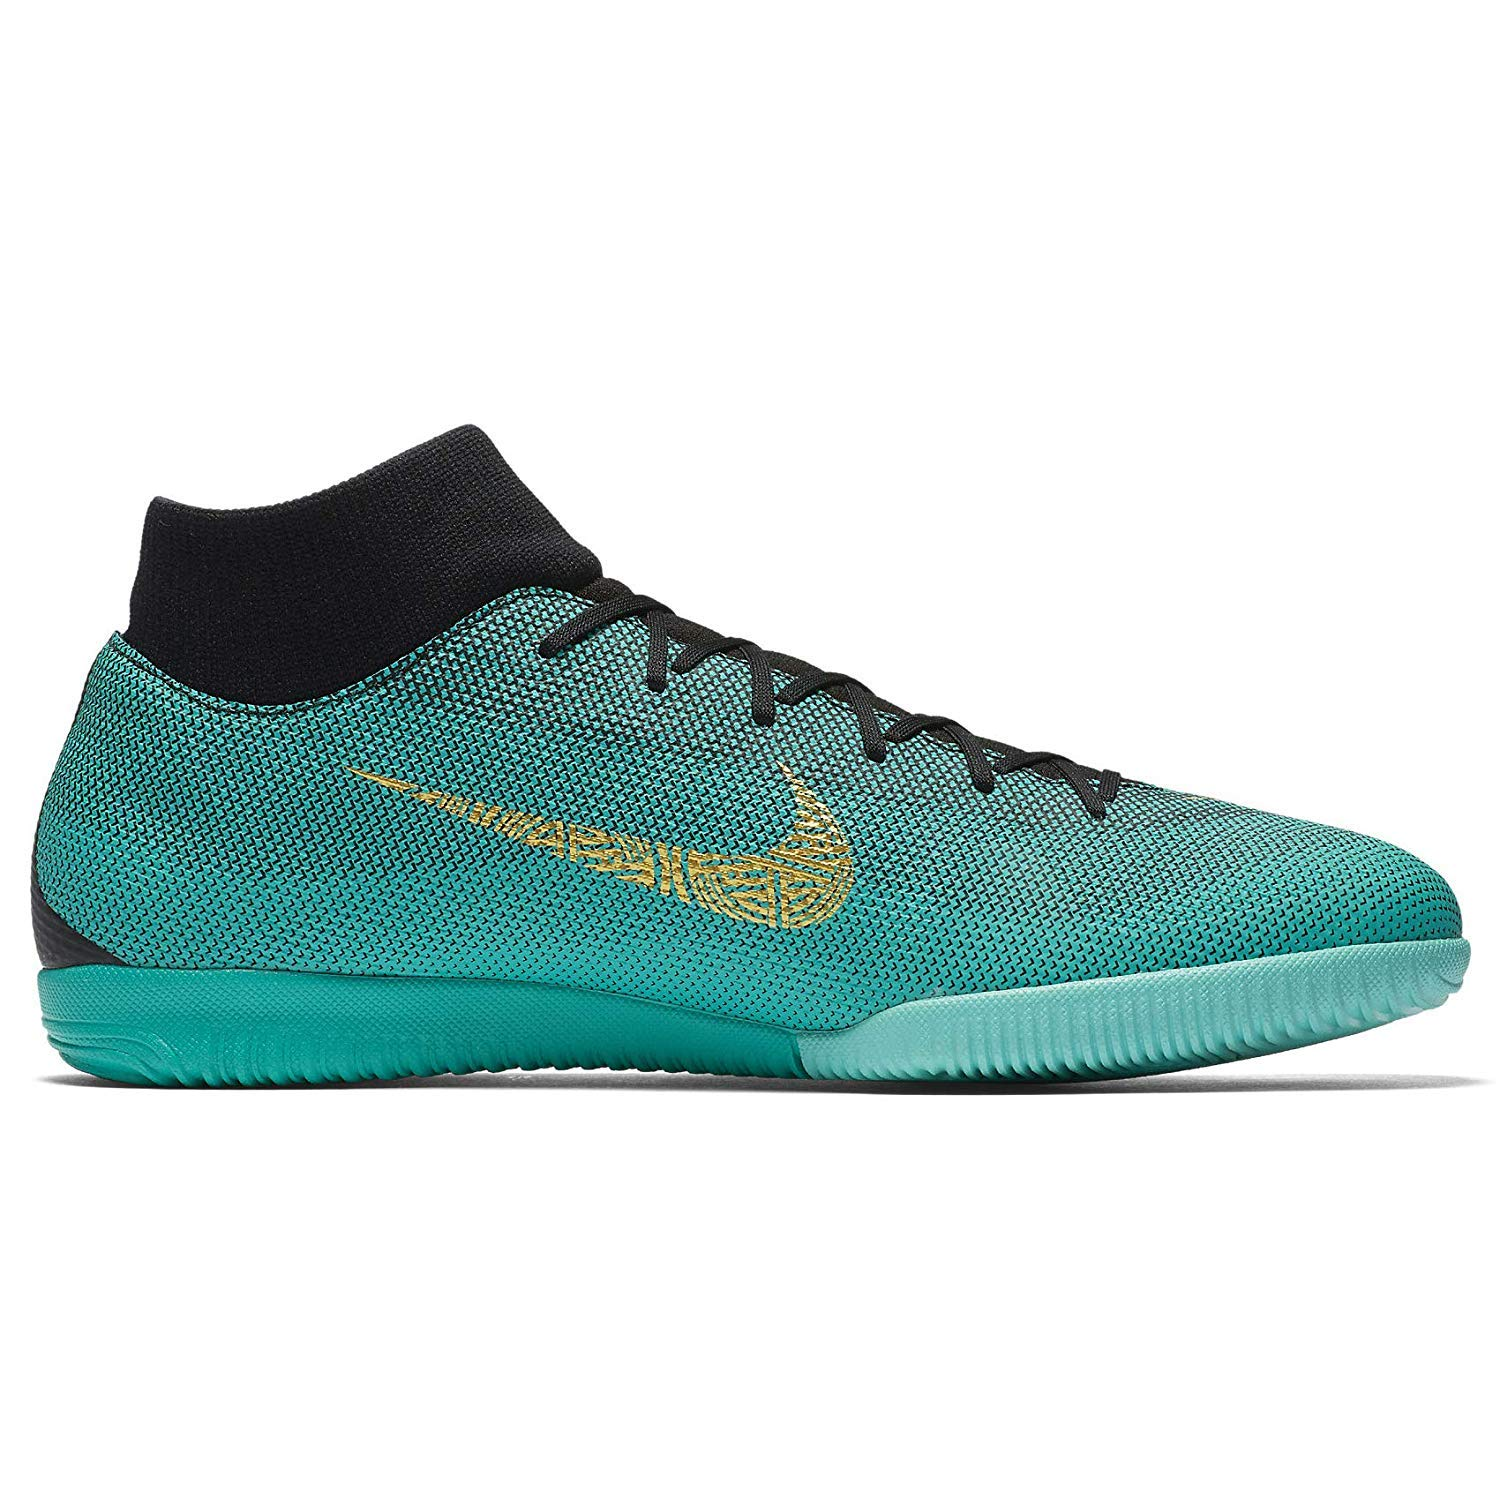 Nike SUPERFLYX 6 Academy CR7 CR7 CR7 IC 5d115c